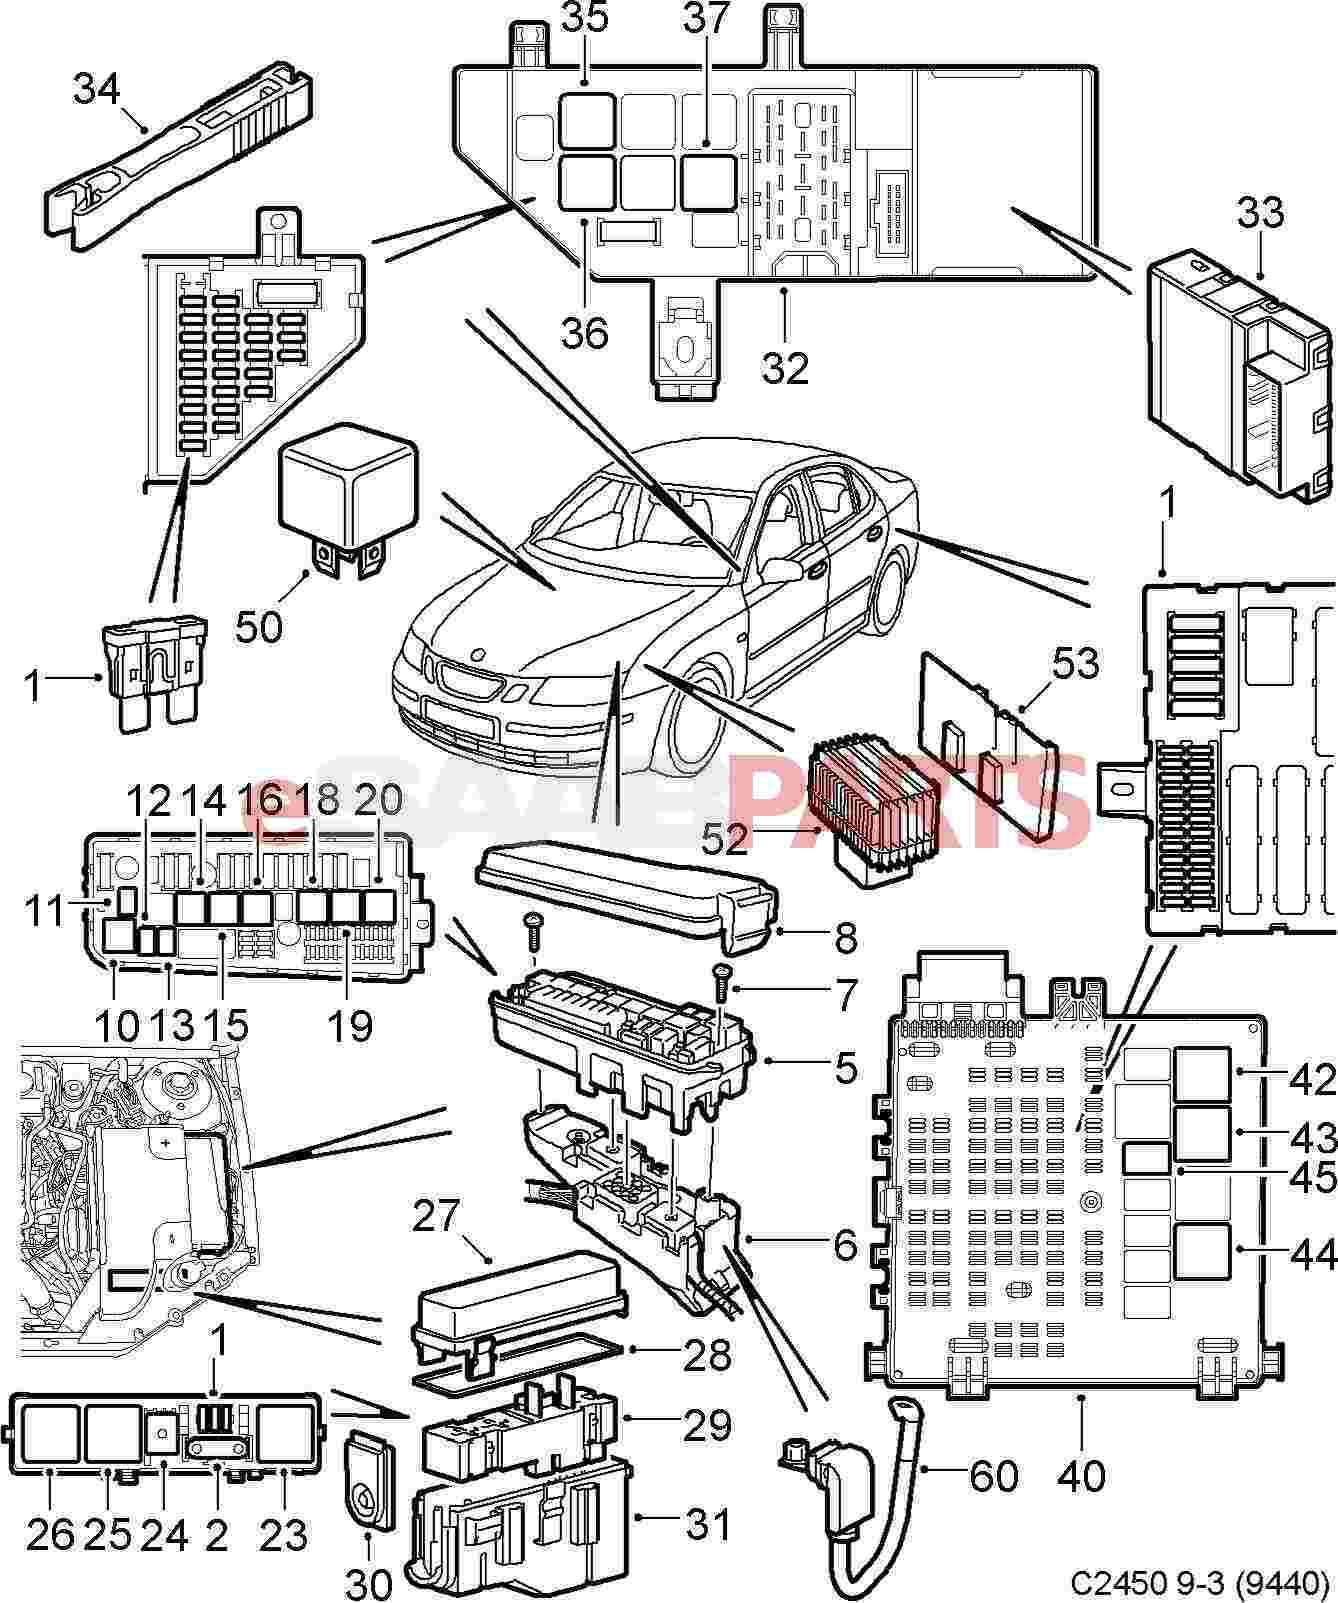 Saab 9 3 Headlight Wiring Diagram Library Sonett 2004 Enthusiast Diagrams U2022 Rh Rasalibre Co 2003